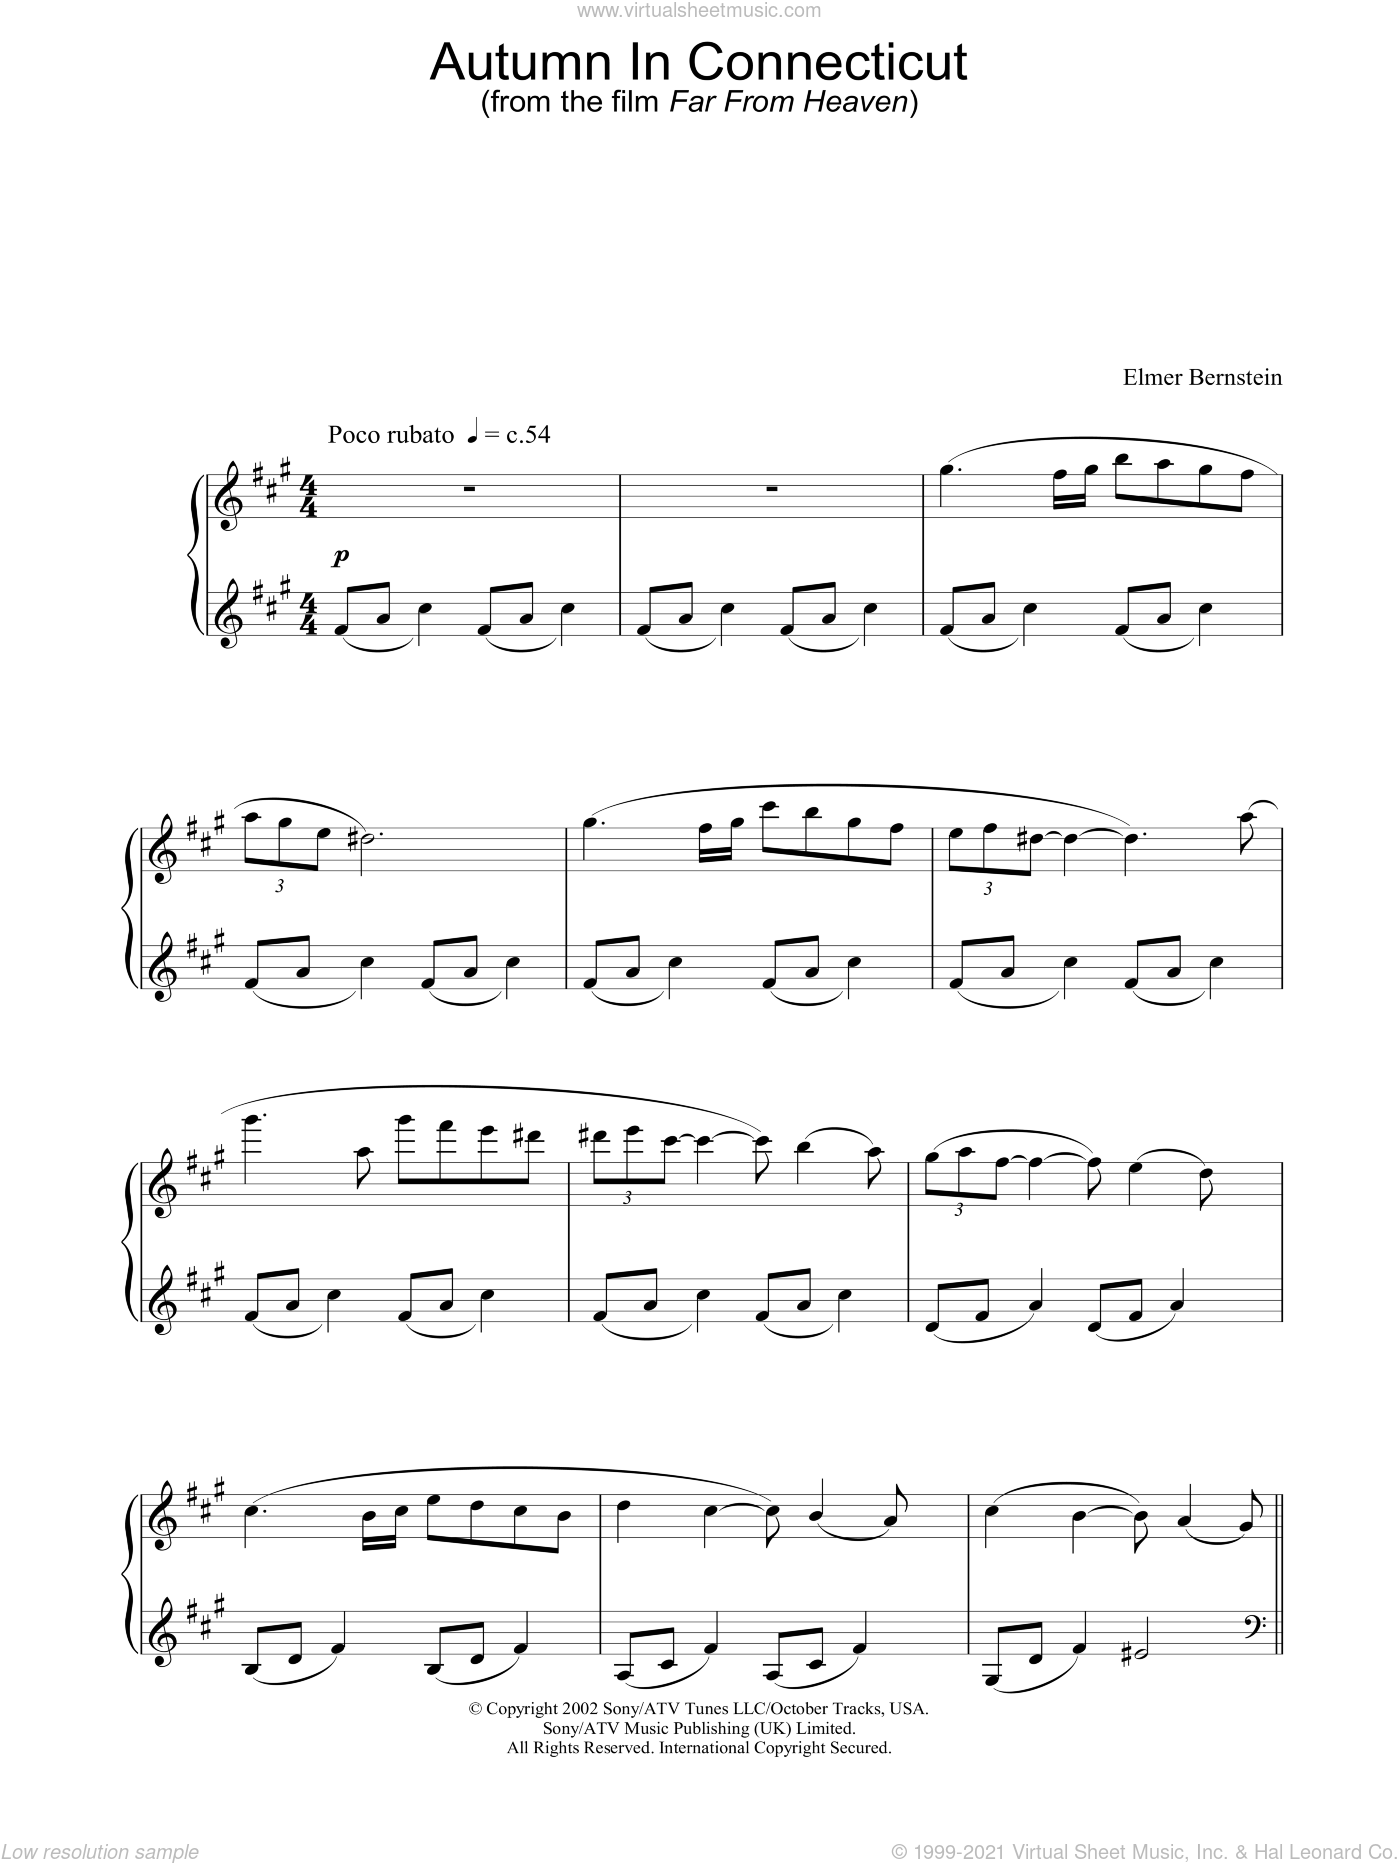 Autumn In Connecticut sheet music for piano solo by Far From Heaven and Elmer Bernstein, intermediate skill level